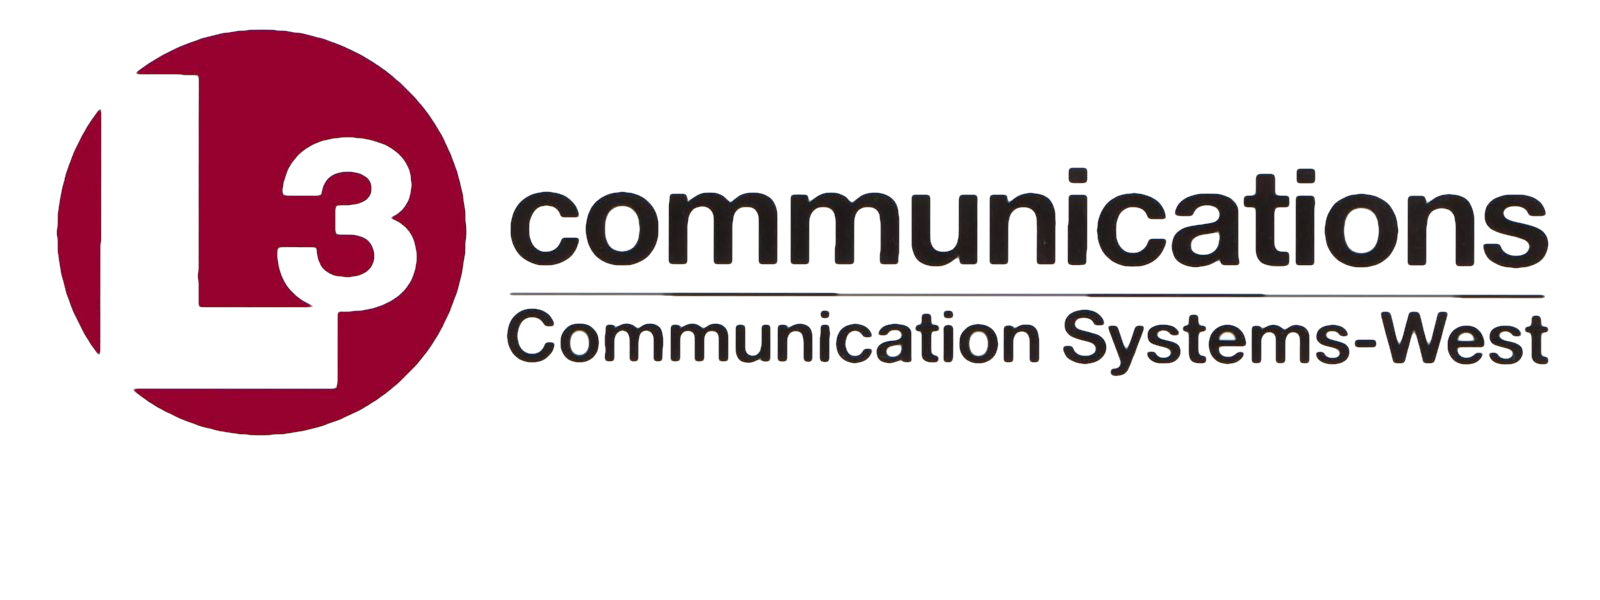 L3 Communications Approval